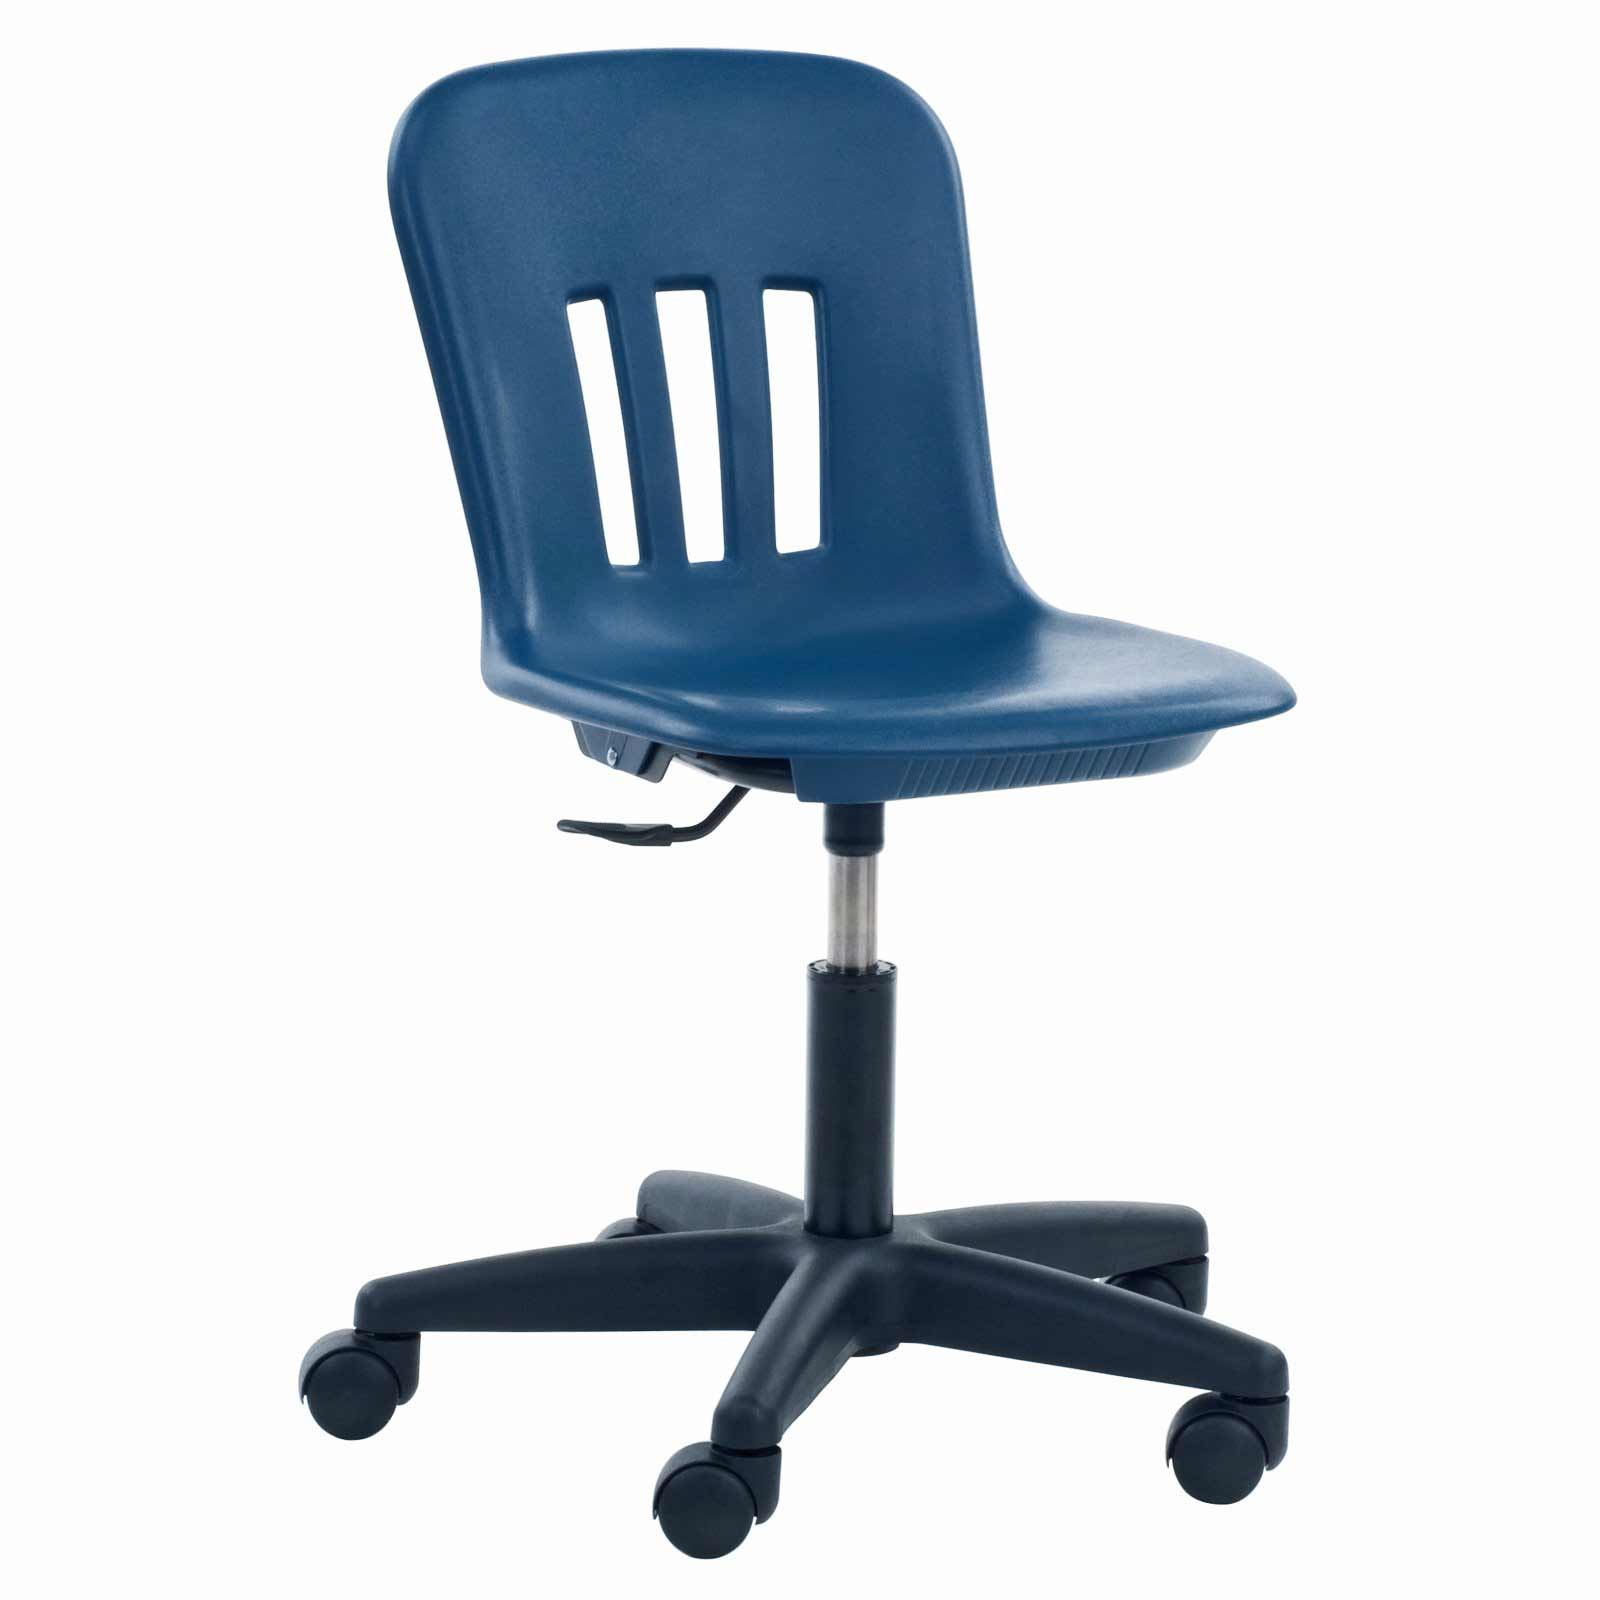 chairs for children lounge chair pool office furniture kids type yvotube